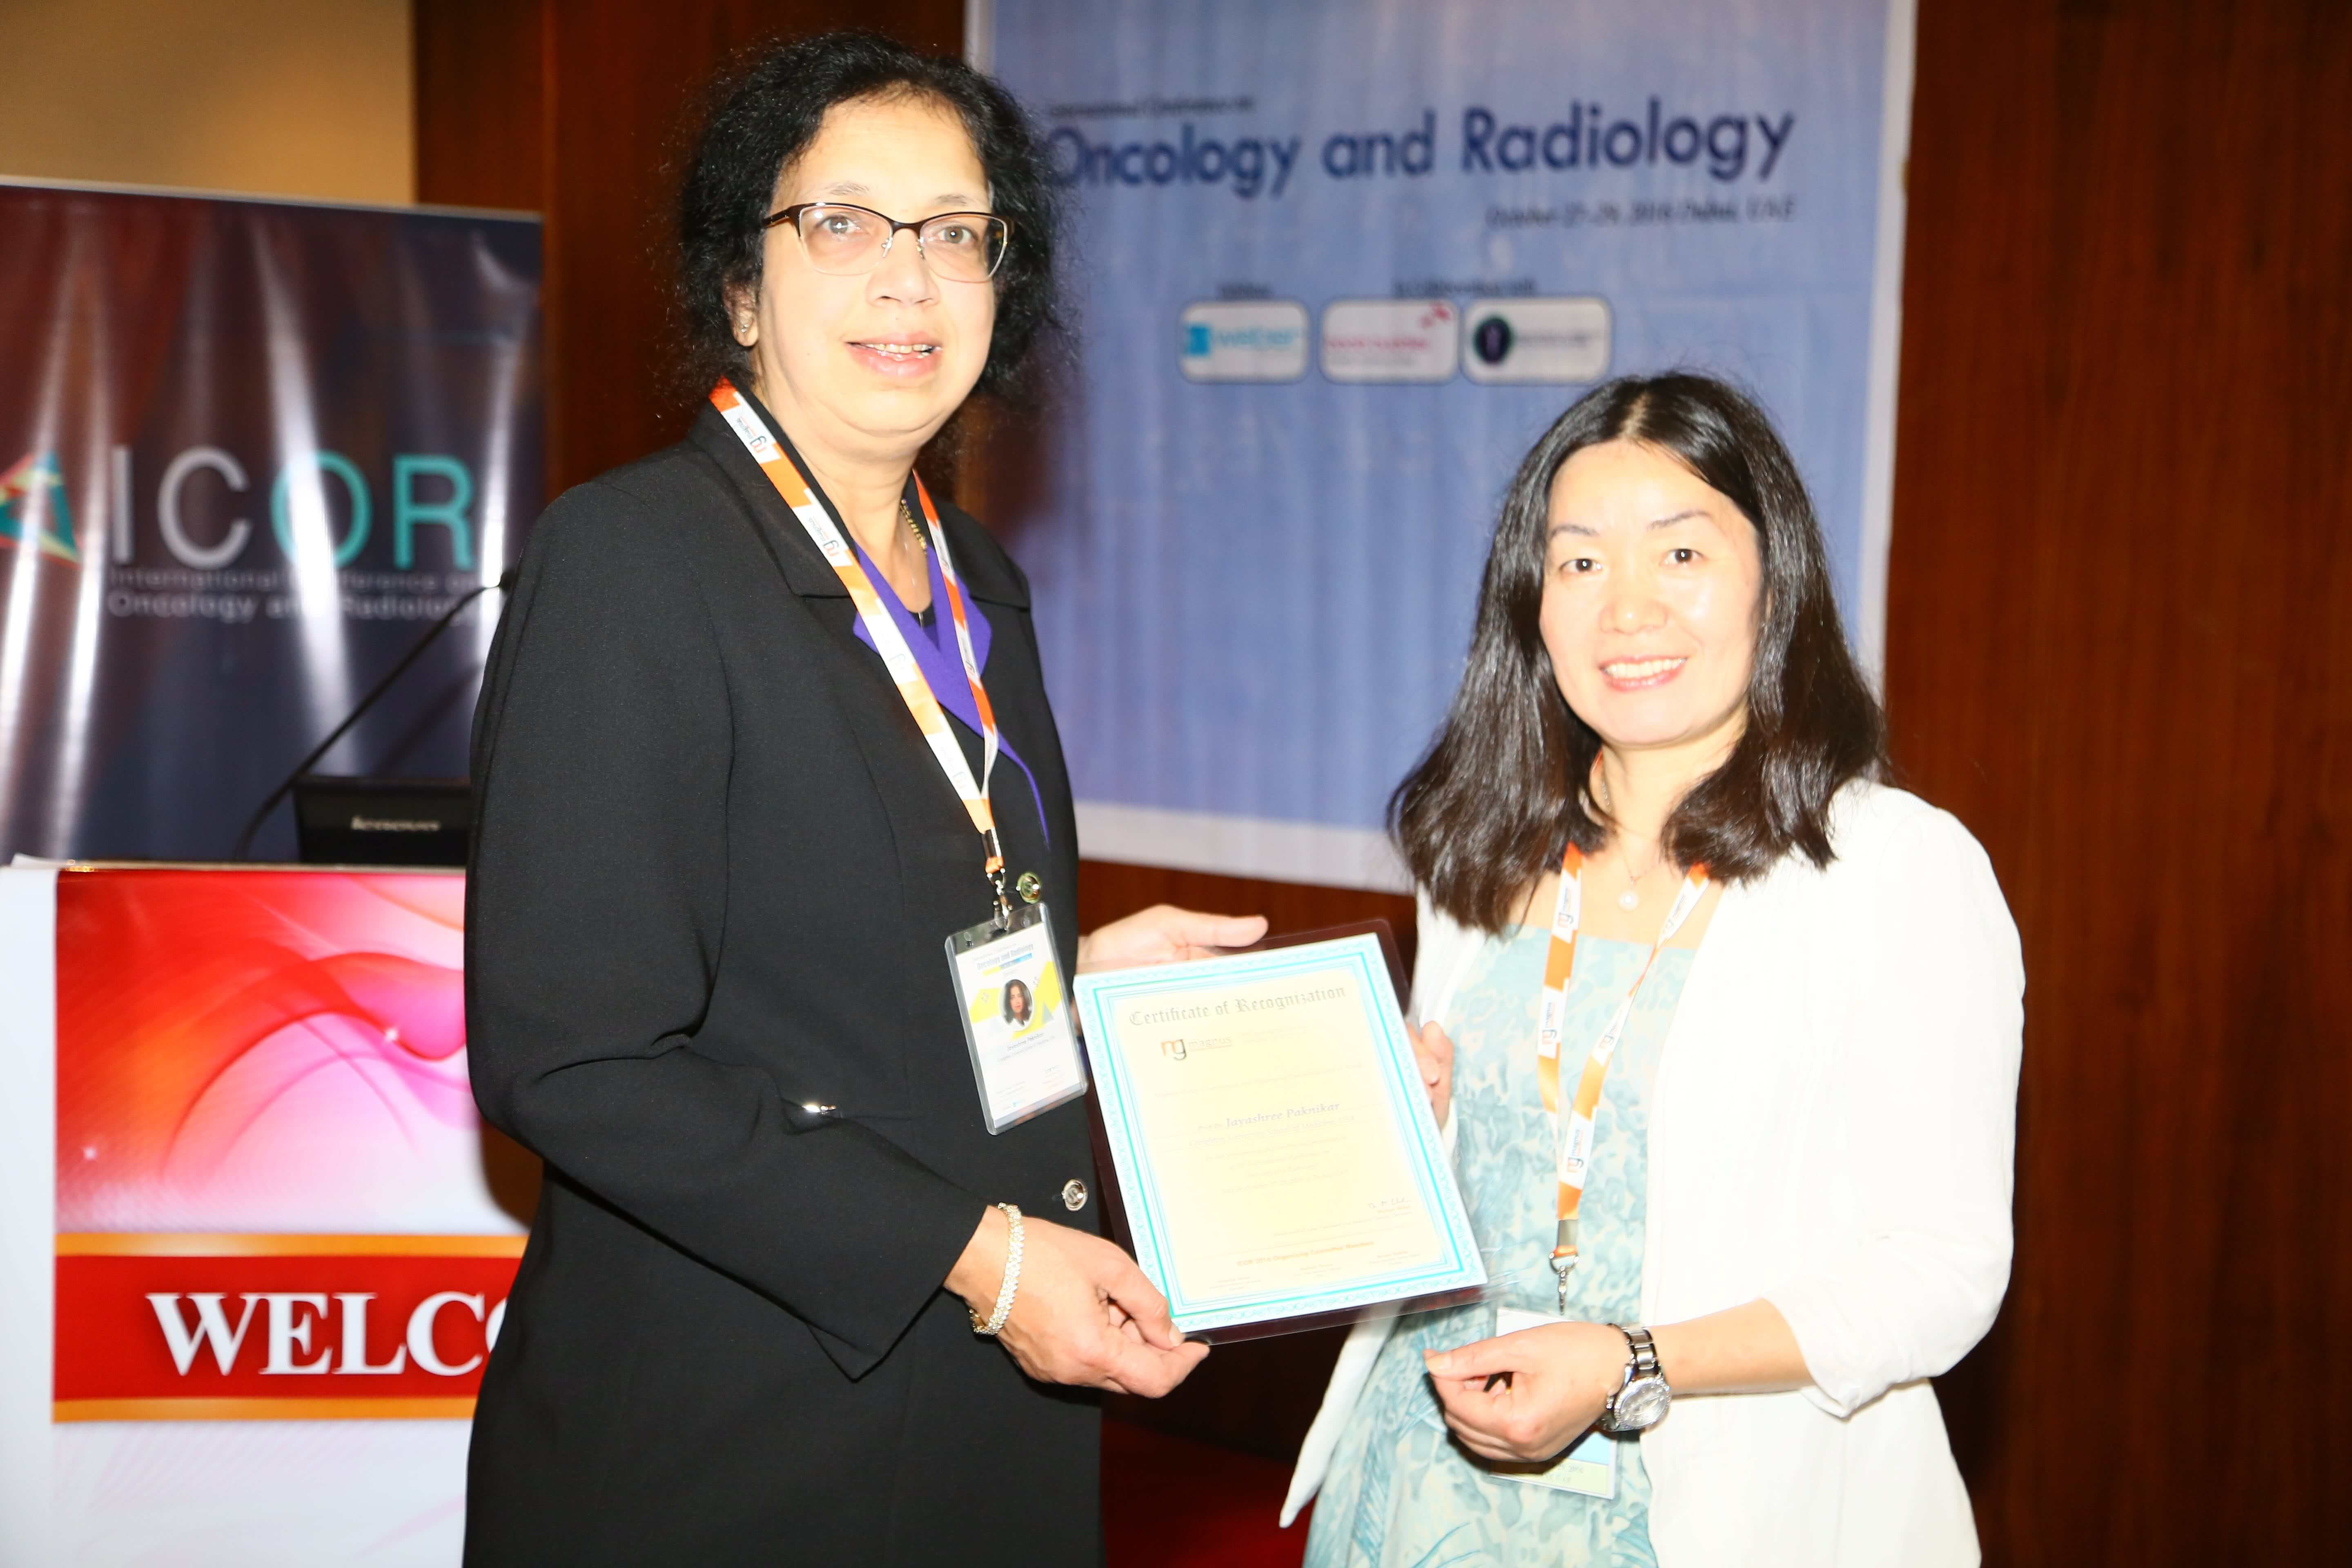 Cancer research conferences - Dr. Xiufen Zheng